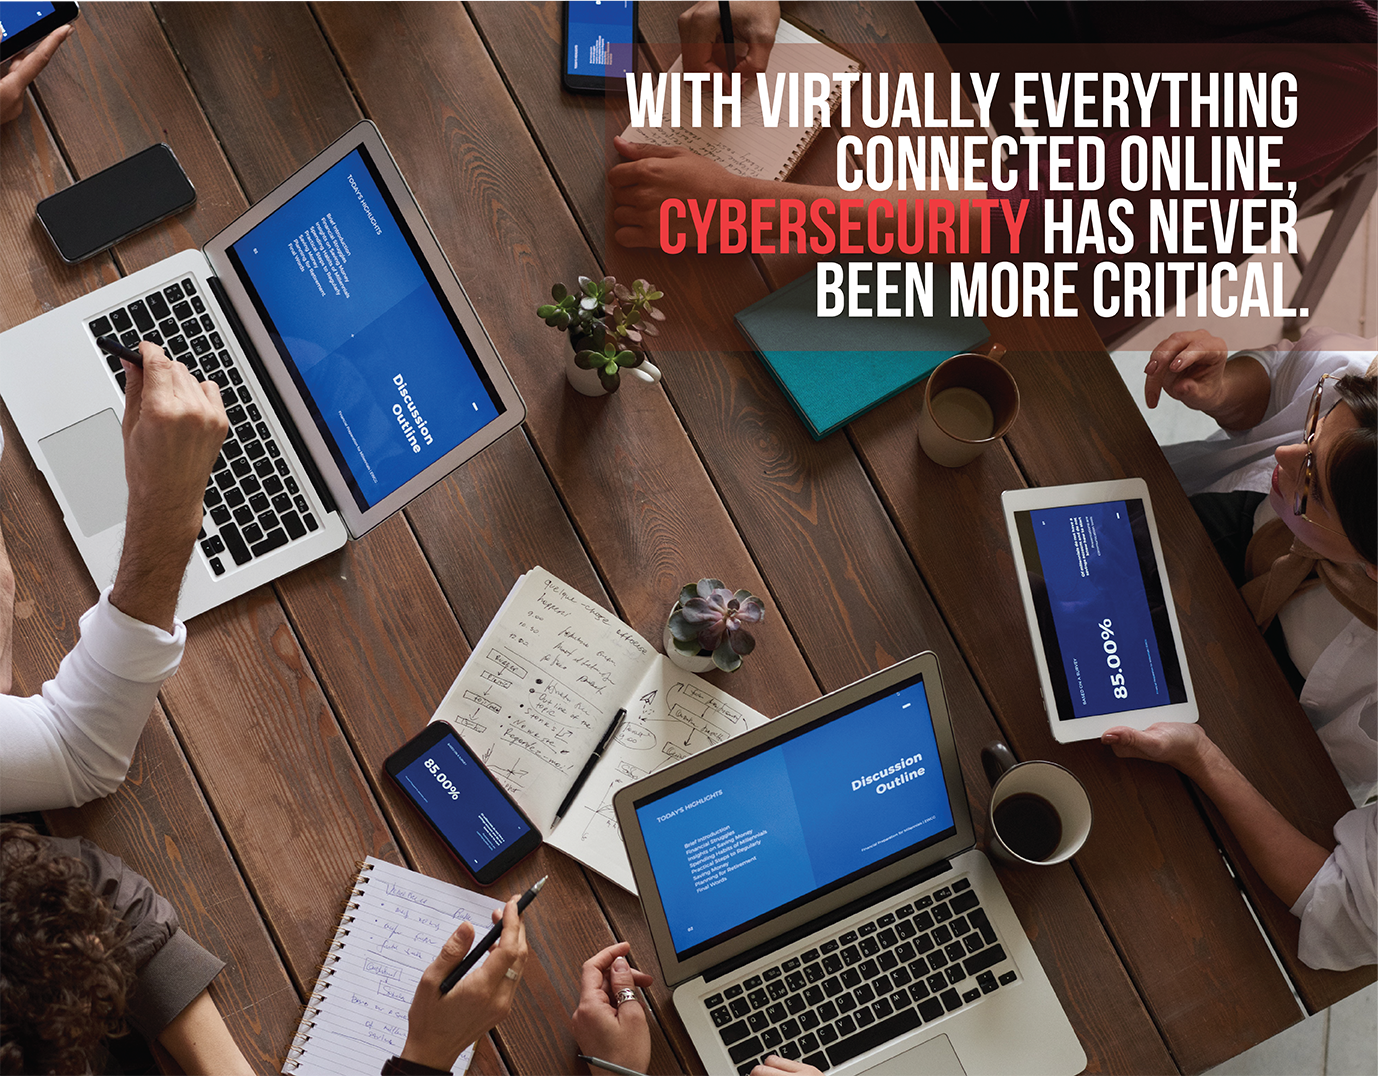 cybersecurity has never been more critical with virtually everything connected online